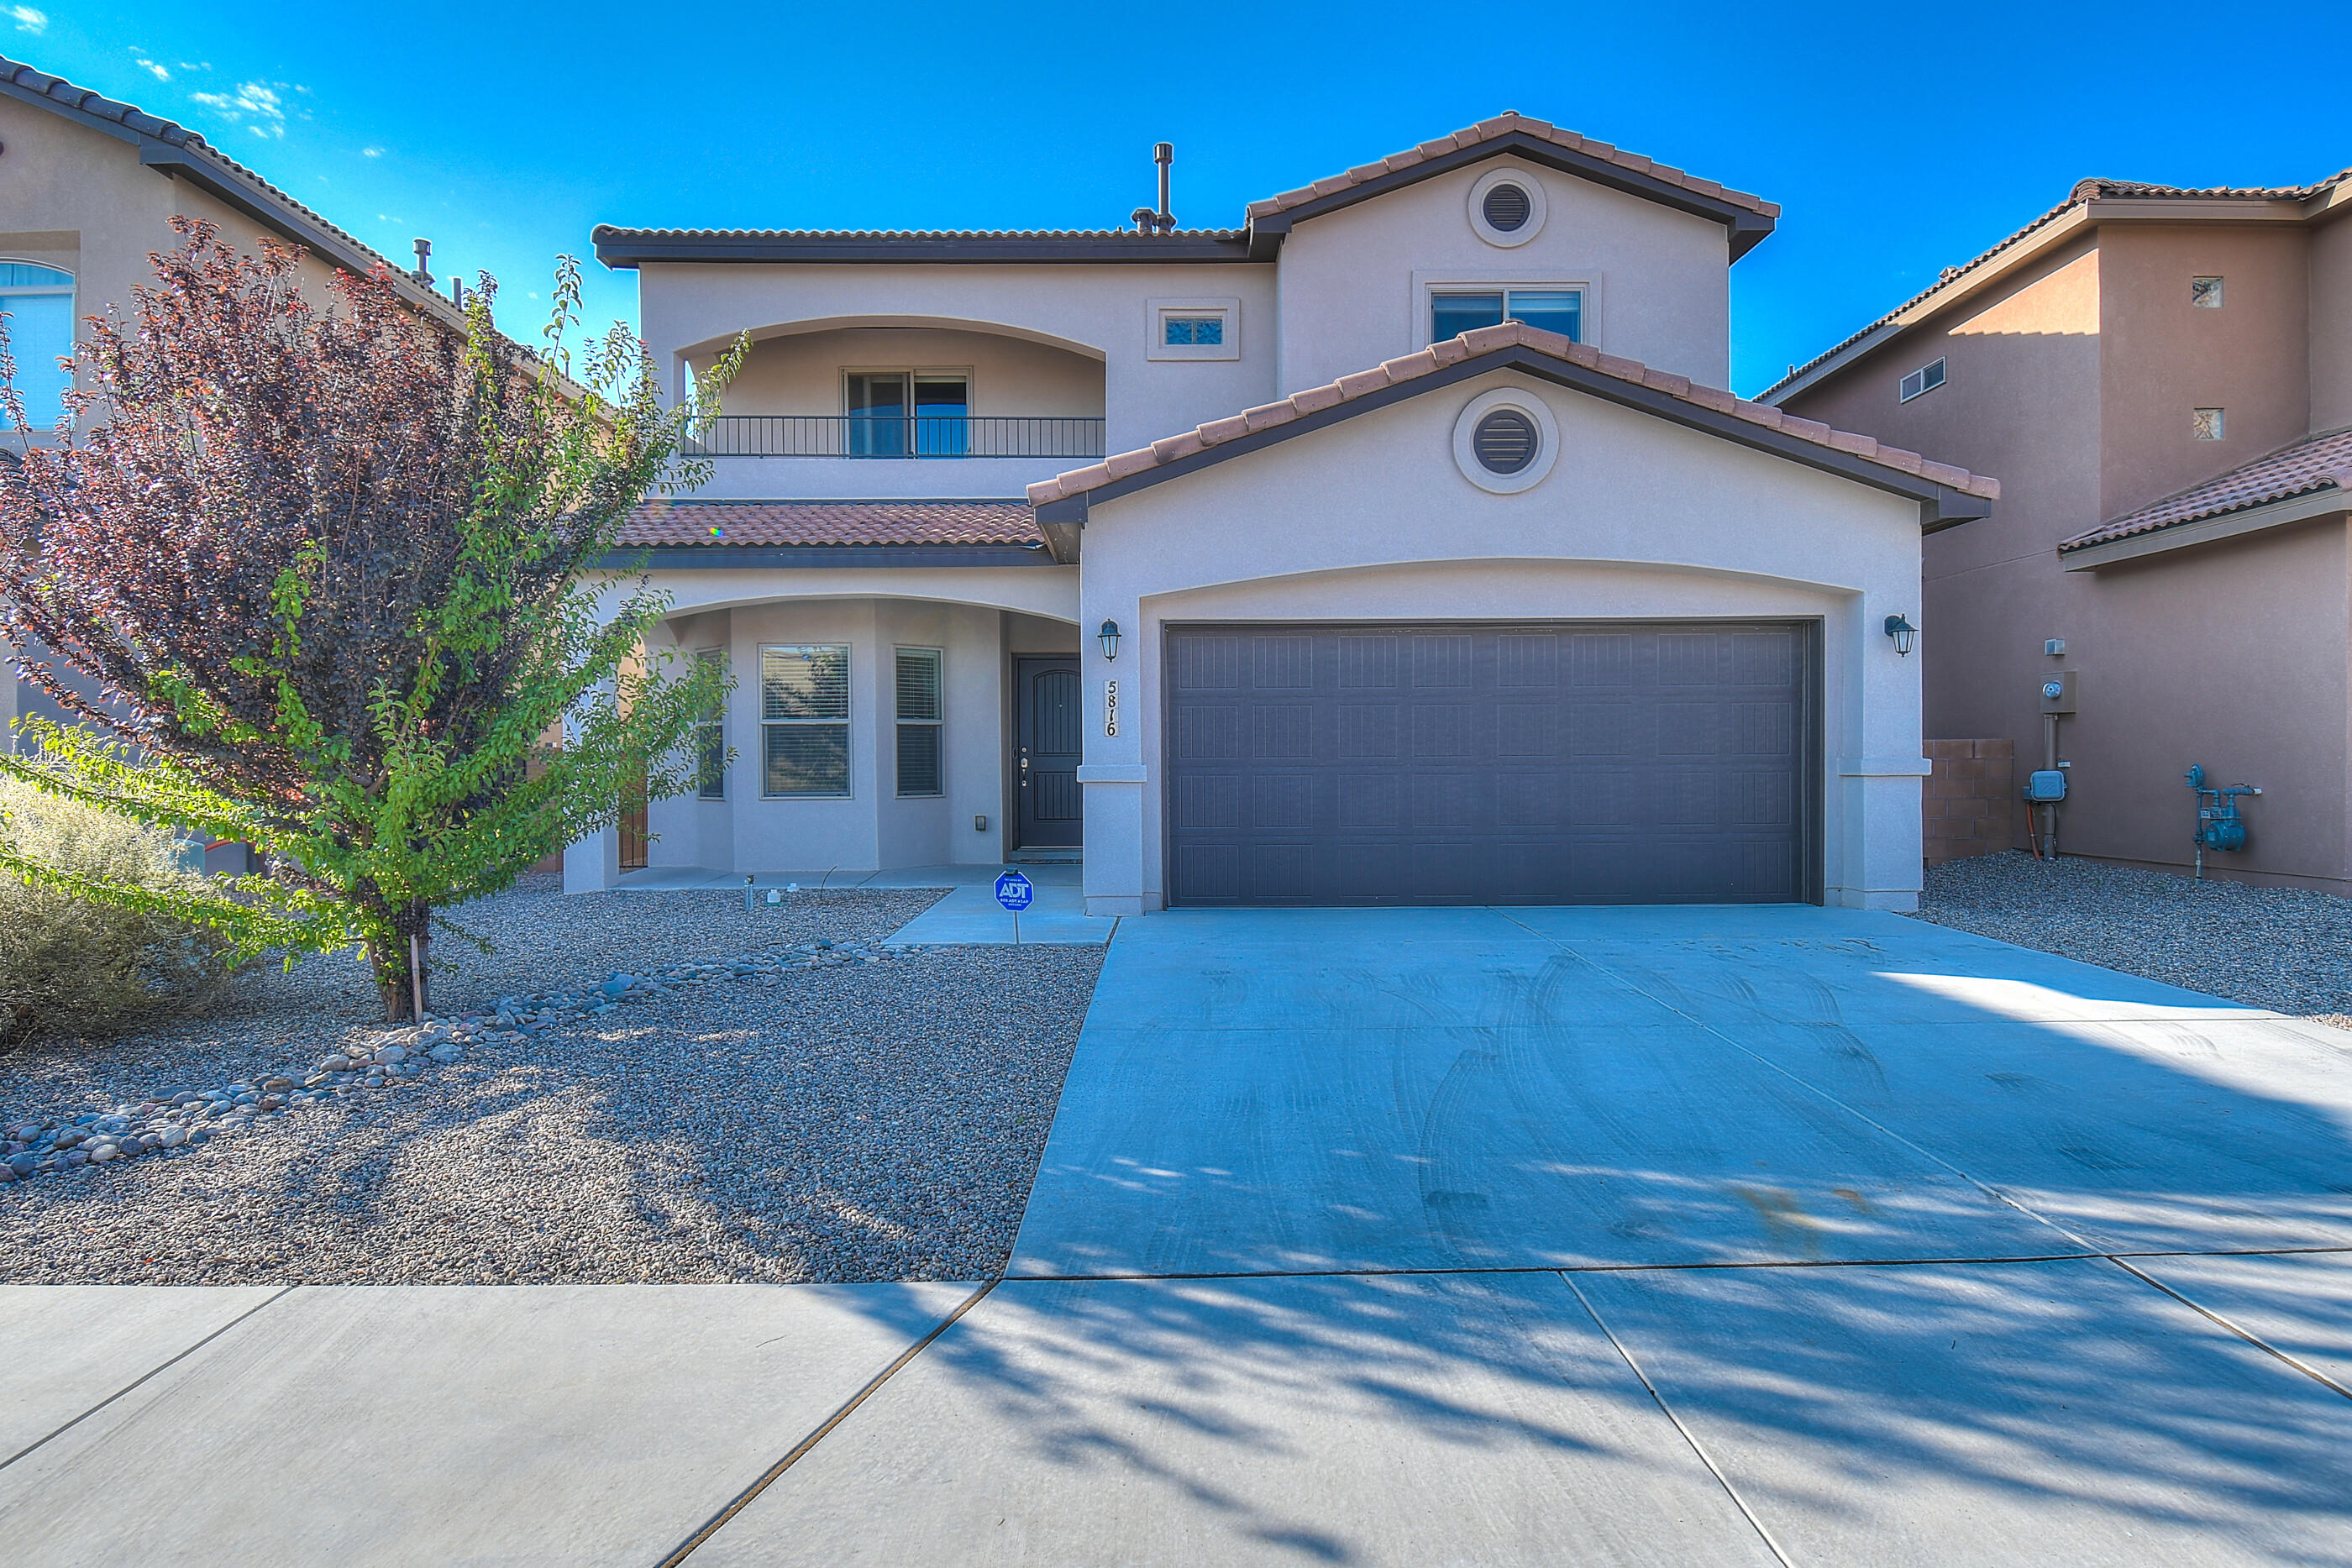 WELCOME HOME to this 2017 Fuller Home. This amazing home features a bright open floor plan, spacious kitchen with granite counter tops and a breakfast bar. Enjoy your stainless appliances; center island; walk-in pantry and the open space to the dining room. One of the rooms is located on the main floor with a full bath across the hall making it convenient to use as an Office, Den or 4th Bedroom. The Private Owners Suite opens to a large deck, has an oversized master bath with amazing walk-in closet. The loft also opens to a second deck off the front. Stay cool in this home with two refrigerated air units. Great tile roof and a Convenient location to parks; schools; hospitals. No PID Here! SCHEDULE YOUR SHOWING TODAY!